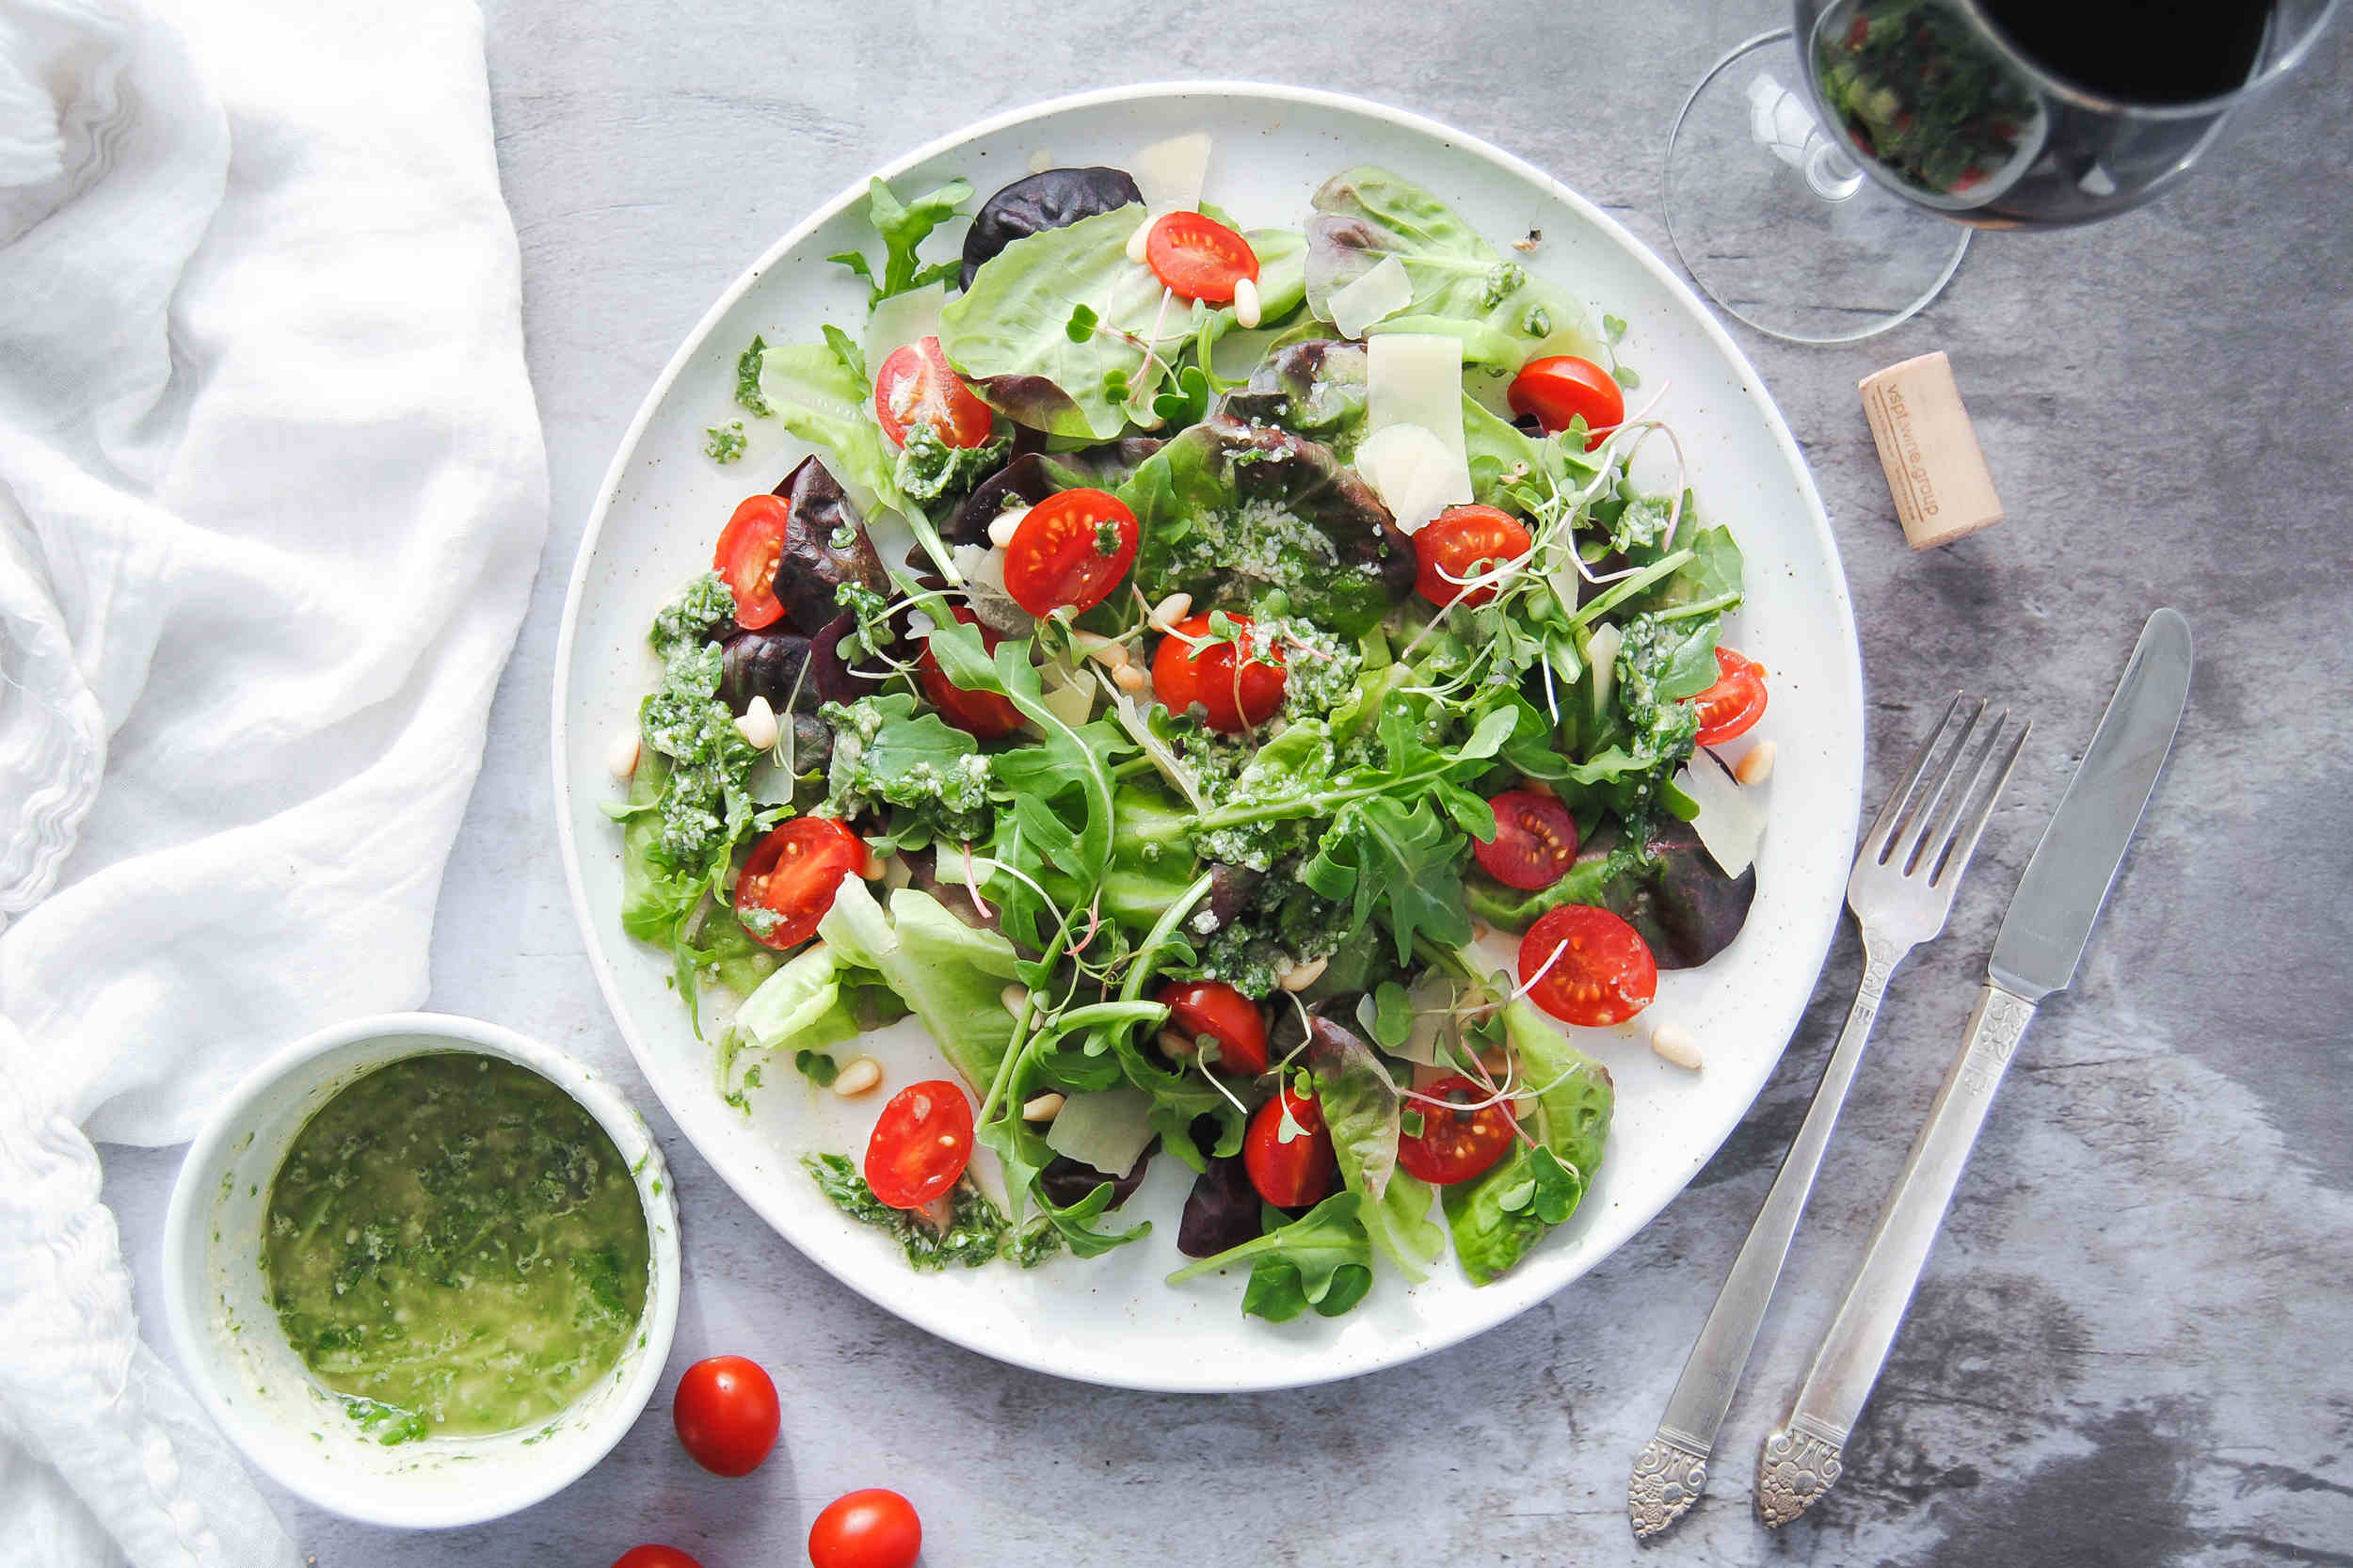 picture of green salad with tomatoes surrounded by vinaigrette and wine and utensils